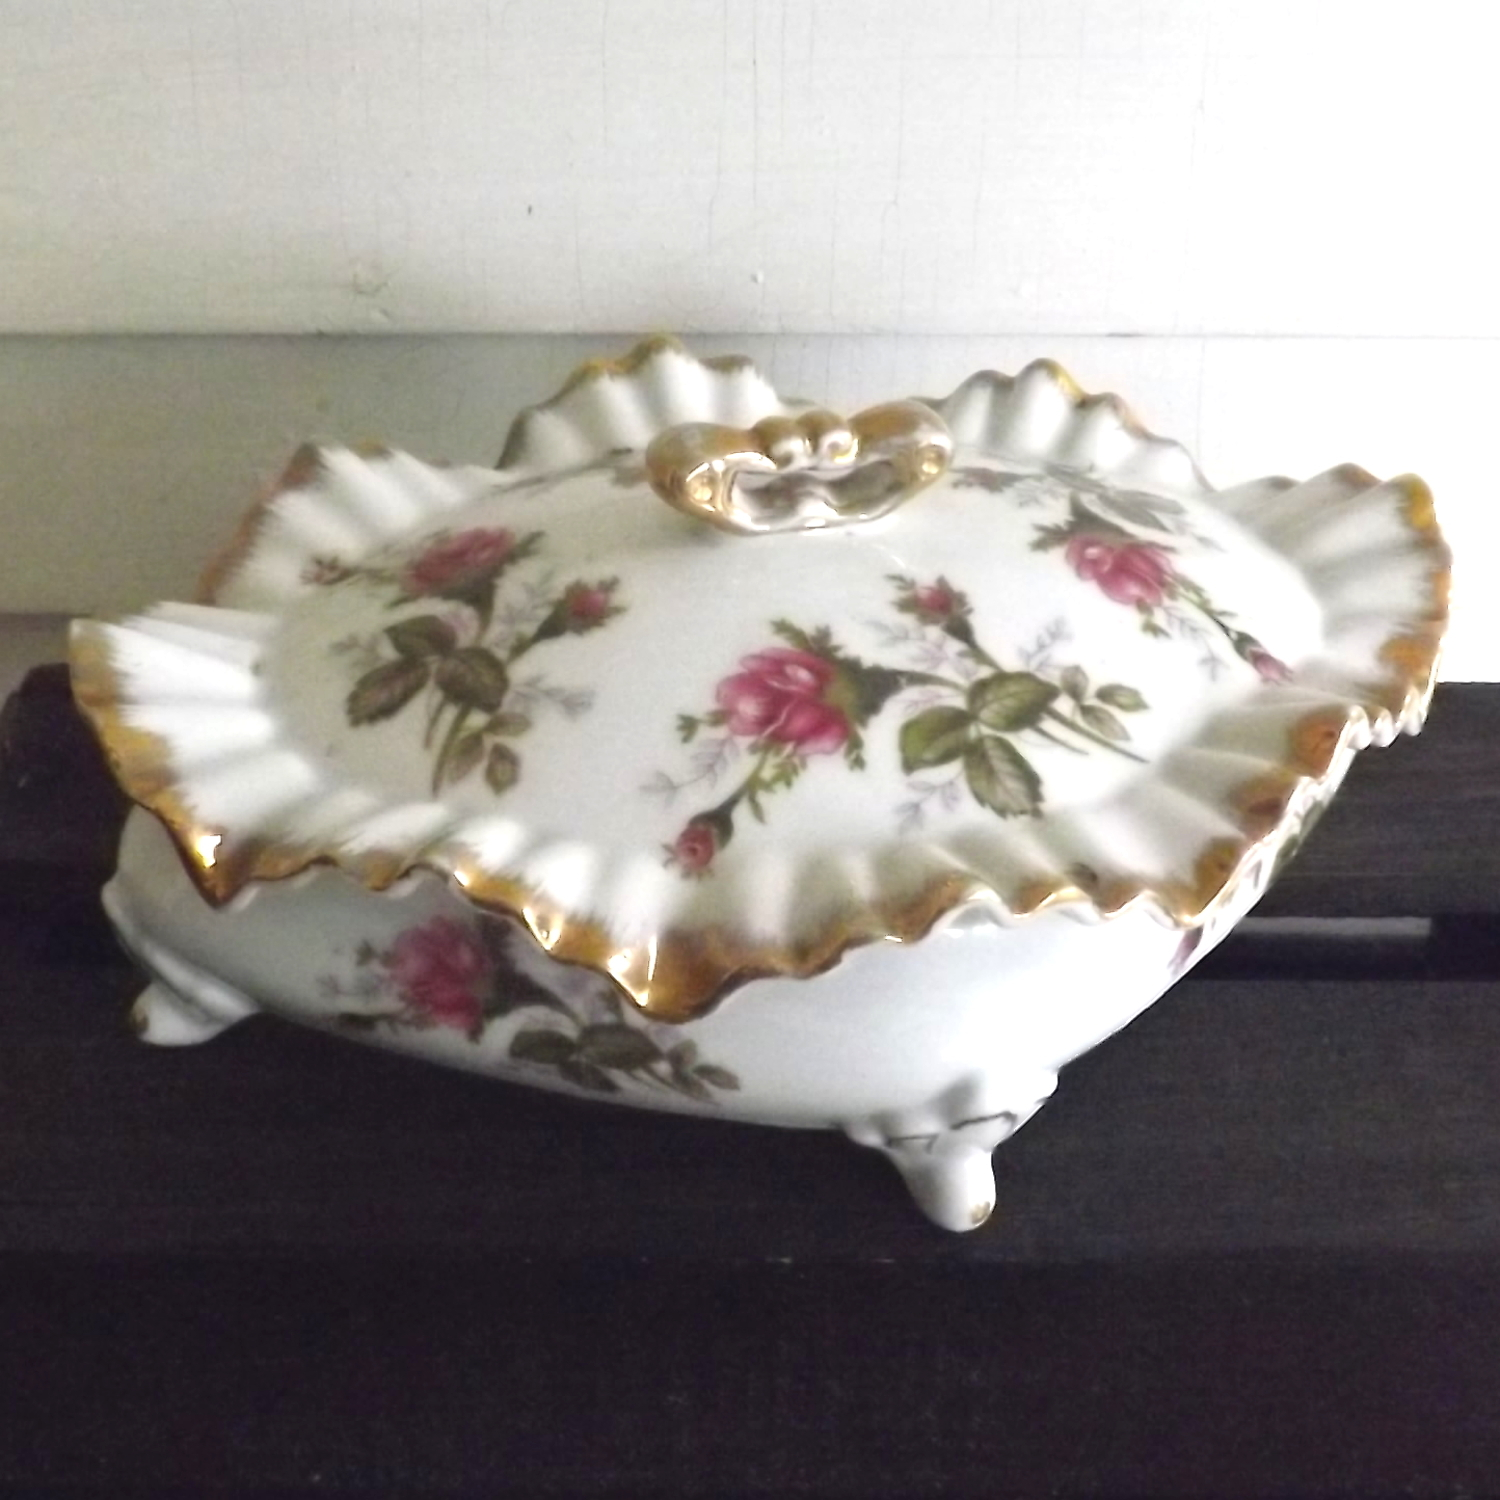 Trinket Box Porcelain Floral Diamond-Shaped with Ruffled Edges (Unbranded)